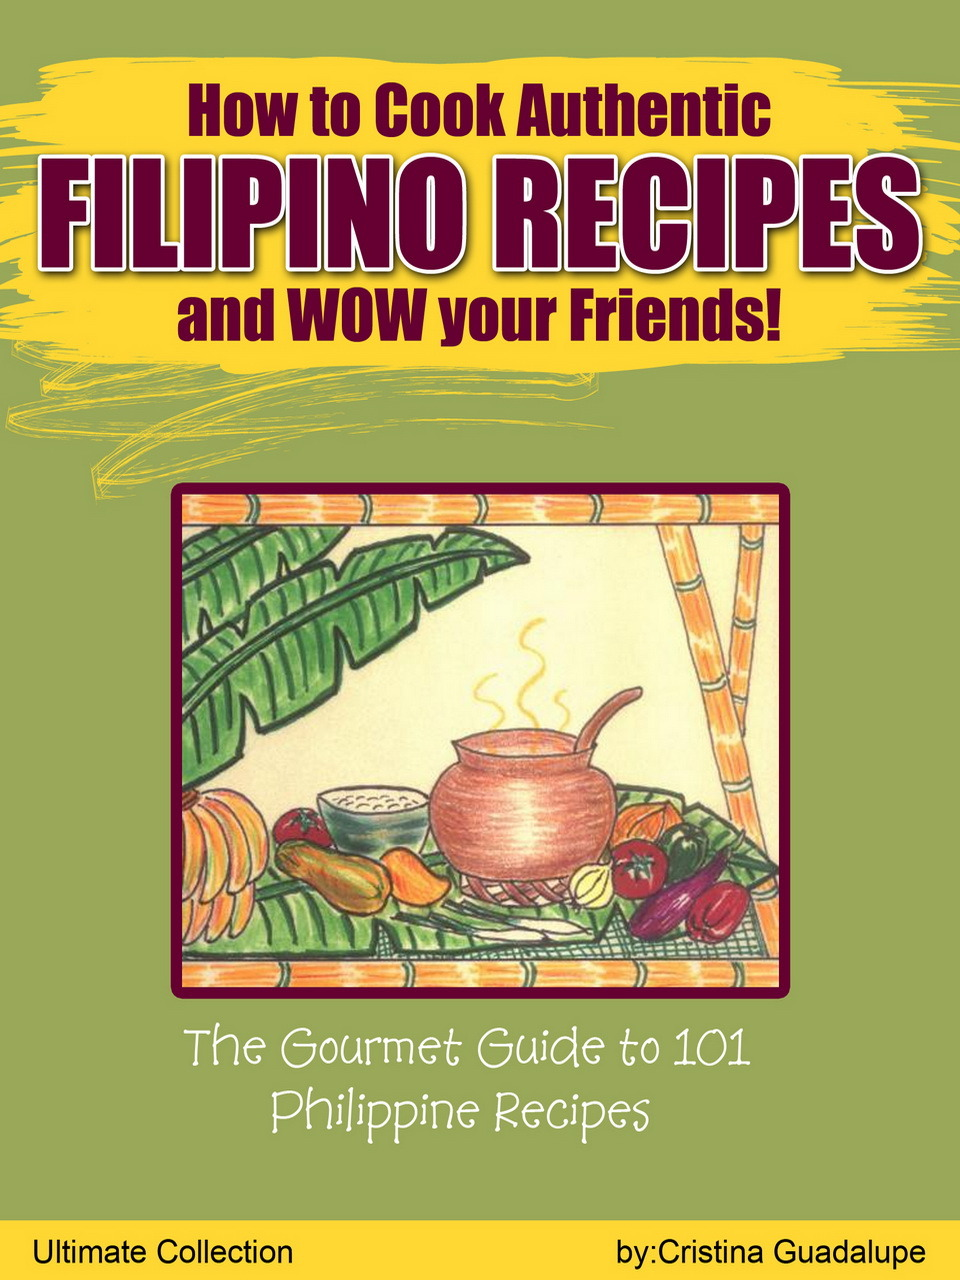 How to Cook Filipino Recipes and WOW your Friends: The Gourmet Guide to 101 Philippine Recipes—Ultimate Collection